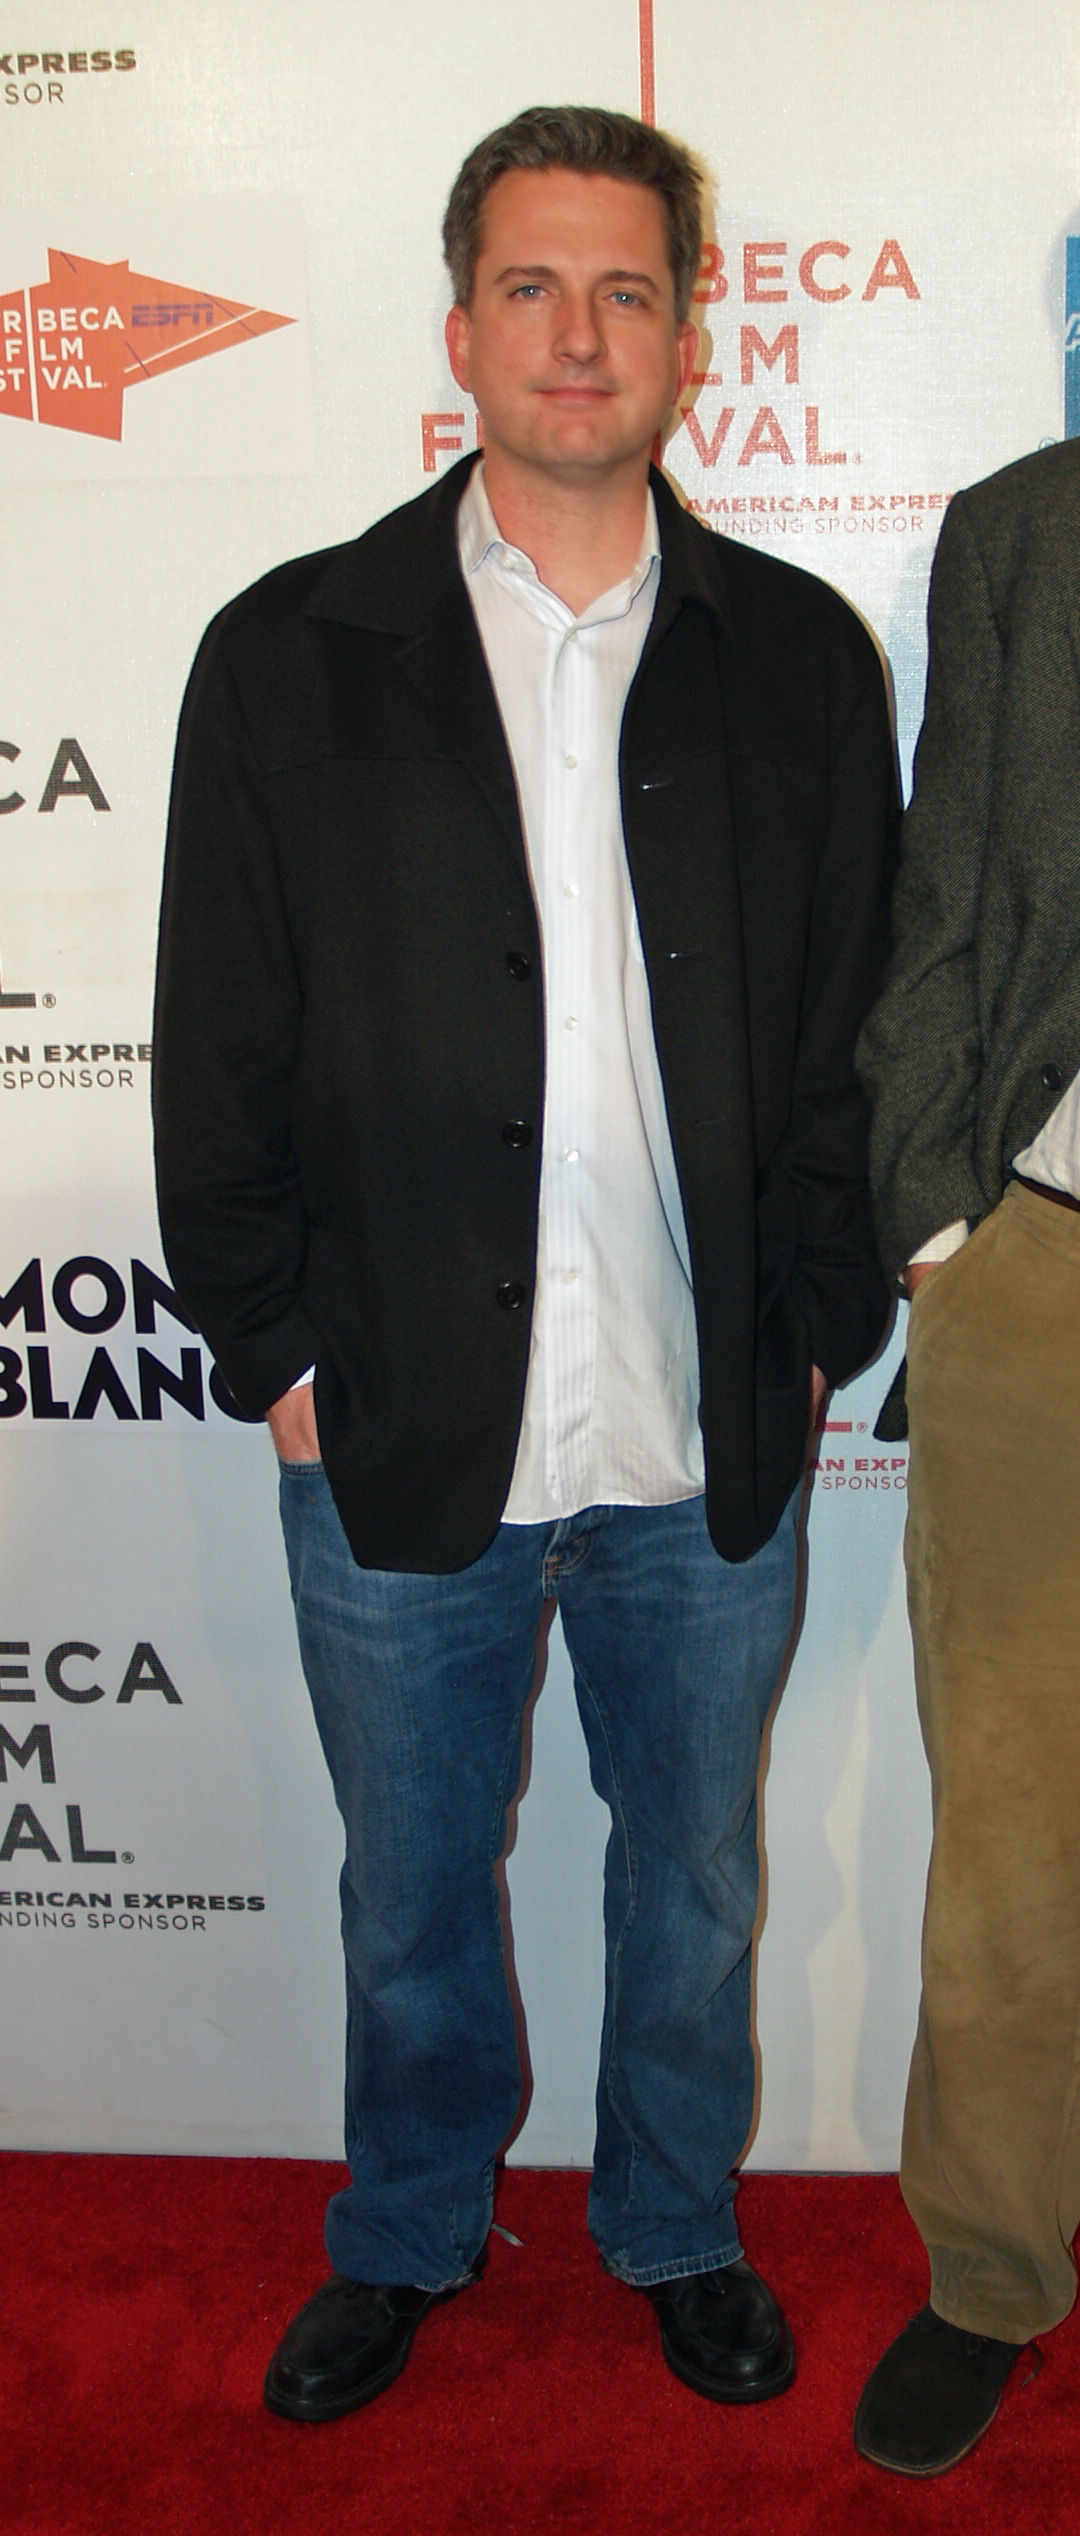 Photo of Bill Simmons: Sports columnist, author, and podcaster